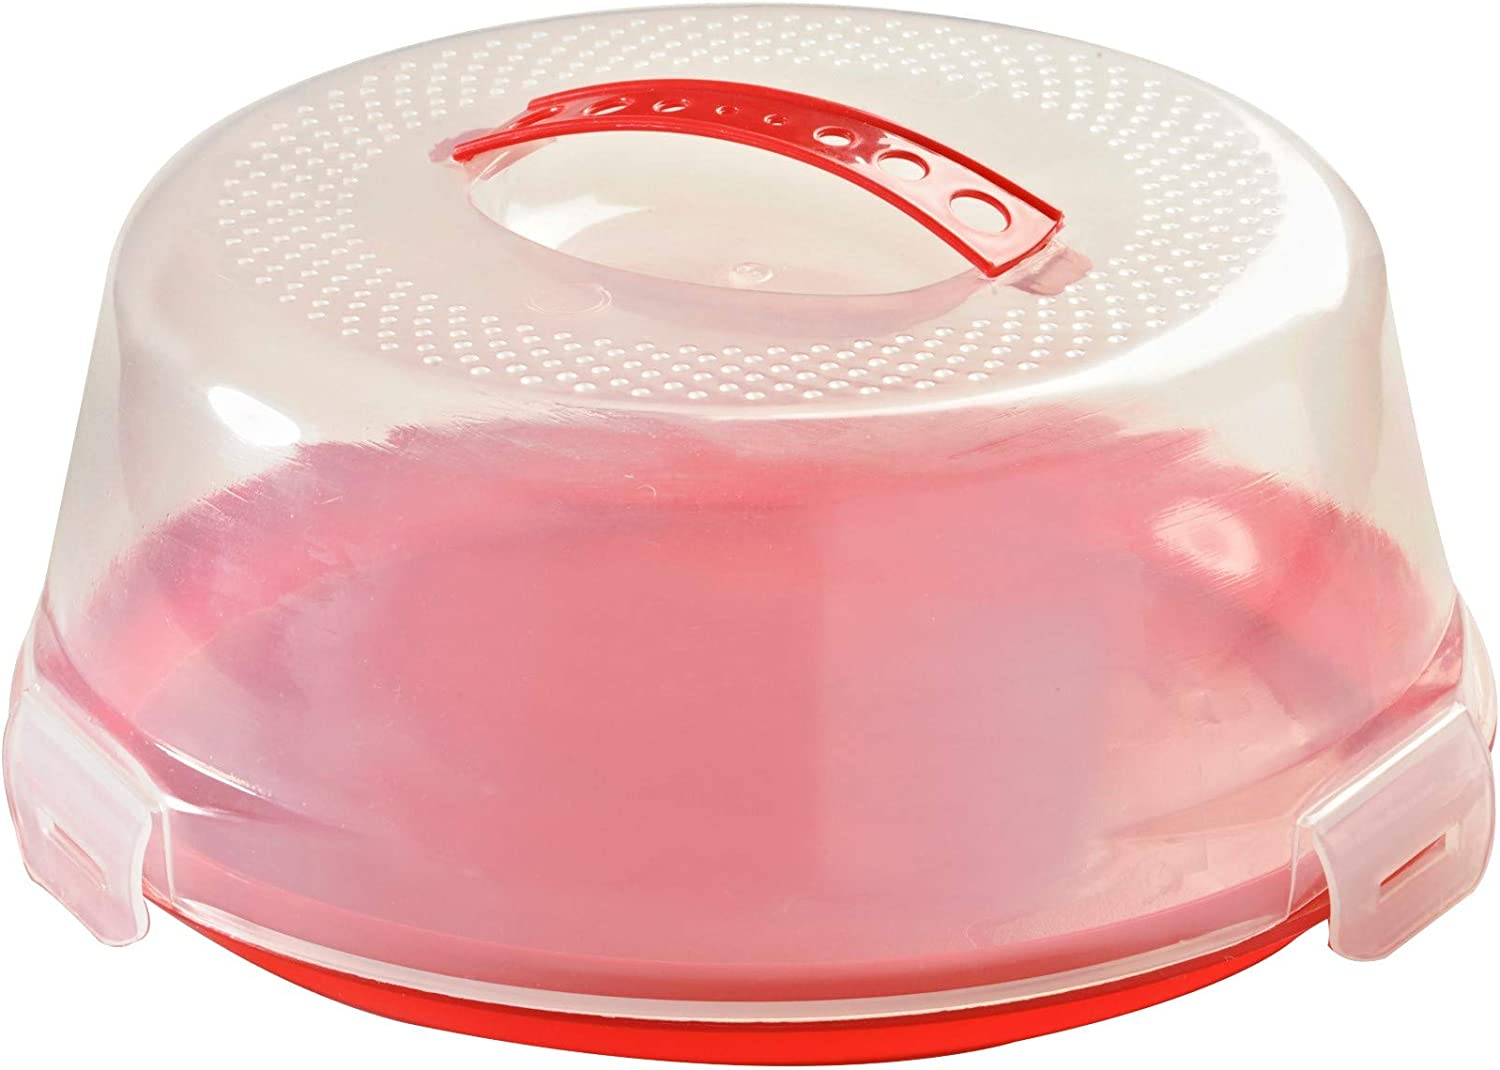 Mason Cash Round 24 cm Cake Caddy with Lid Carry Handle and Easy Locking System Red 26 x 26 x 12 cm